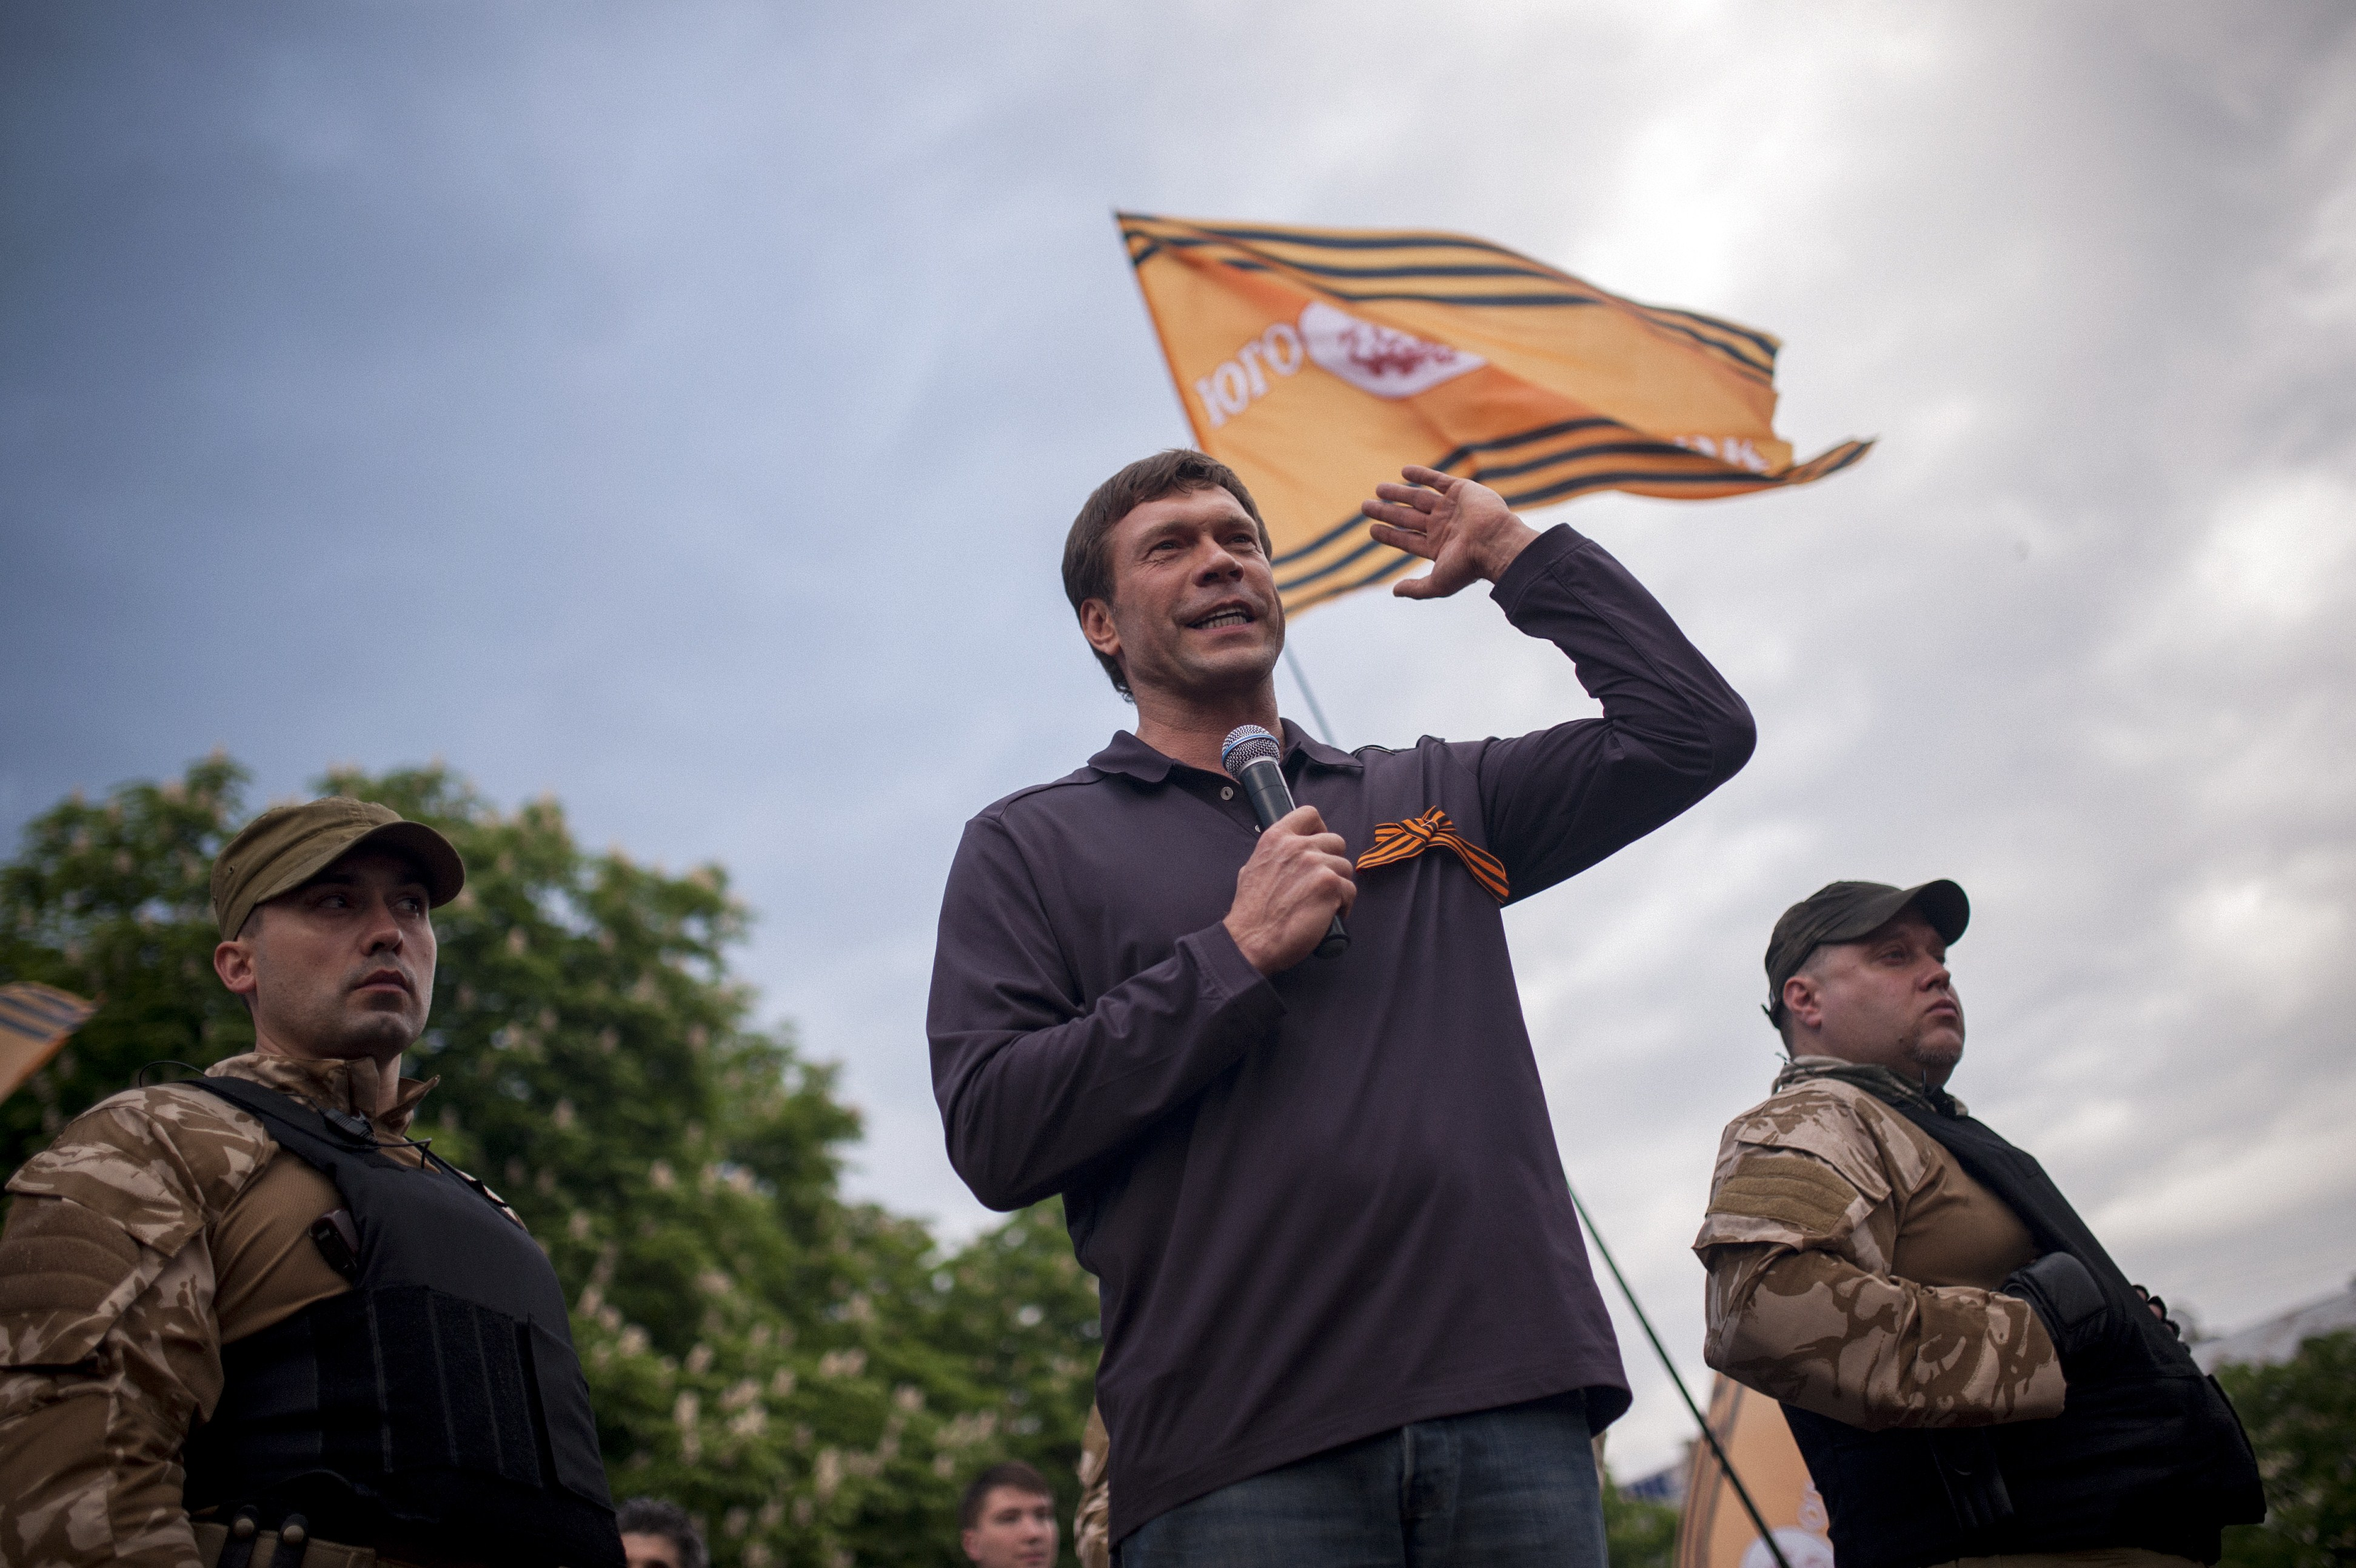 Oleg Tsarev, a withdrew candidate in the 2014 Ukrainian presidential election delivers a speech during celebrations of whate pro-Russian activists of what they claimed was resounding victory in an independence referendum in the eastern Ukrainian city of Lugansk, on May 12, 2014.